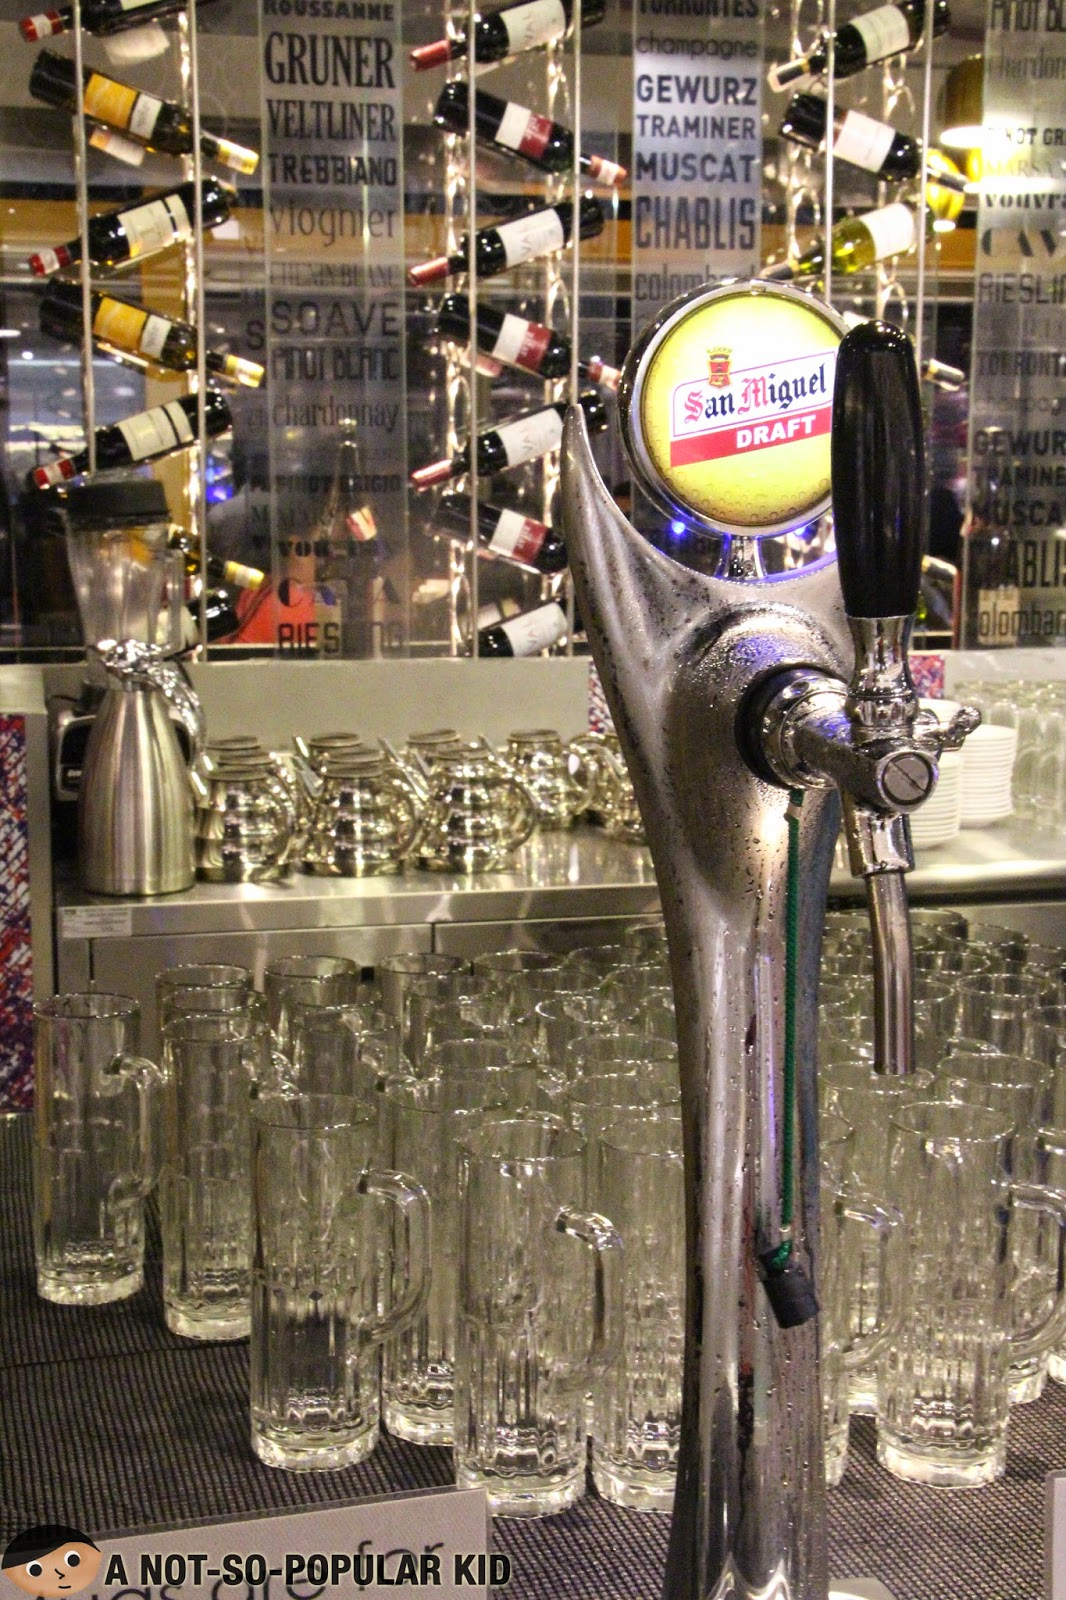 Draft Beer is available in Vikings - SM Megamall